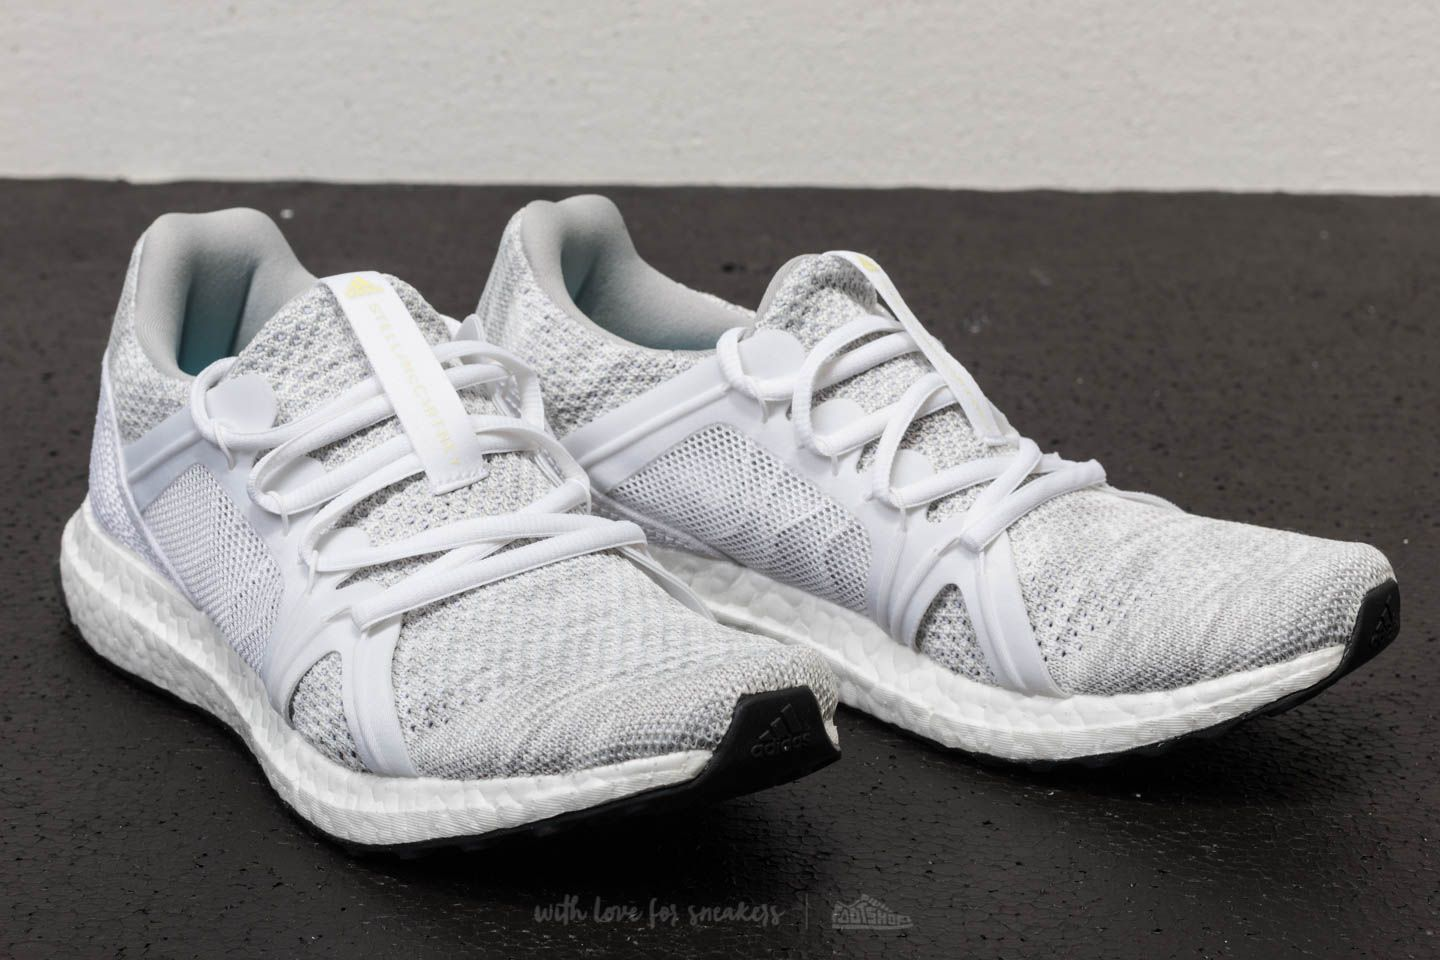 quality design 970f7 a7318 adidas x Stella McCartney Ultraboost Parley Stone  Core White  Mirror Blue  at a great